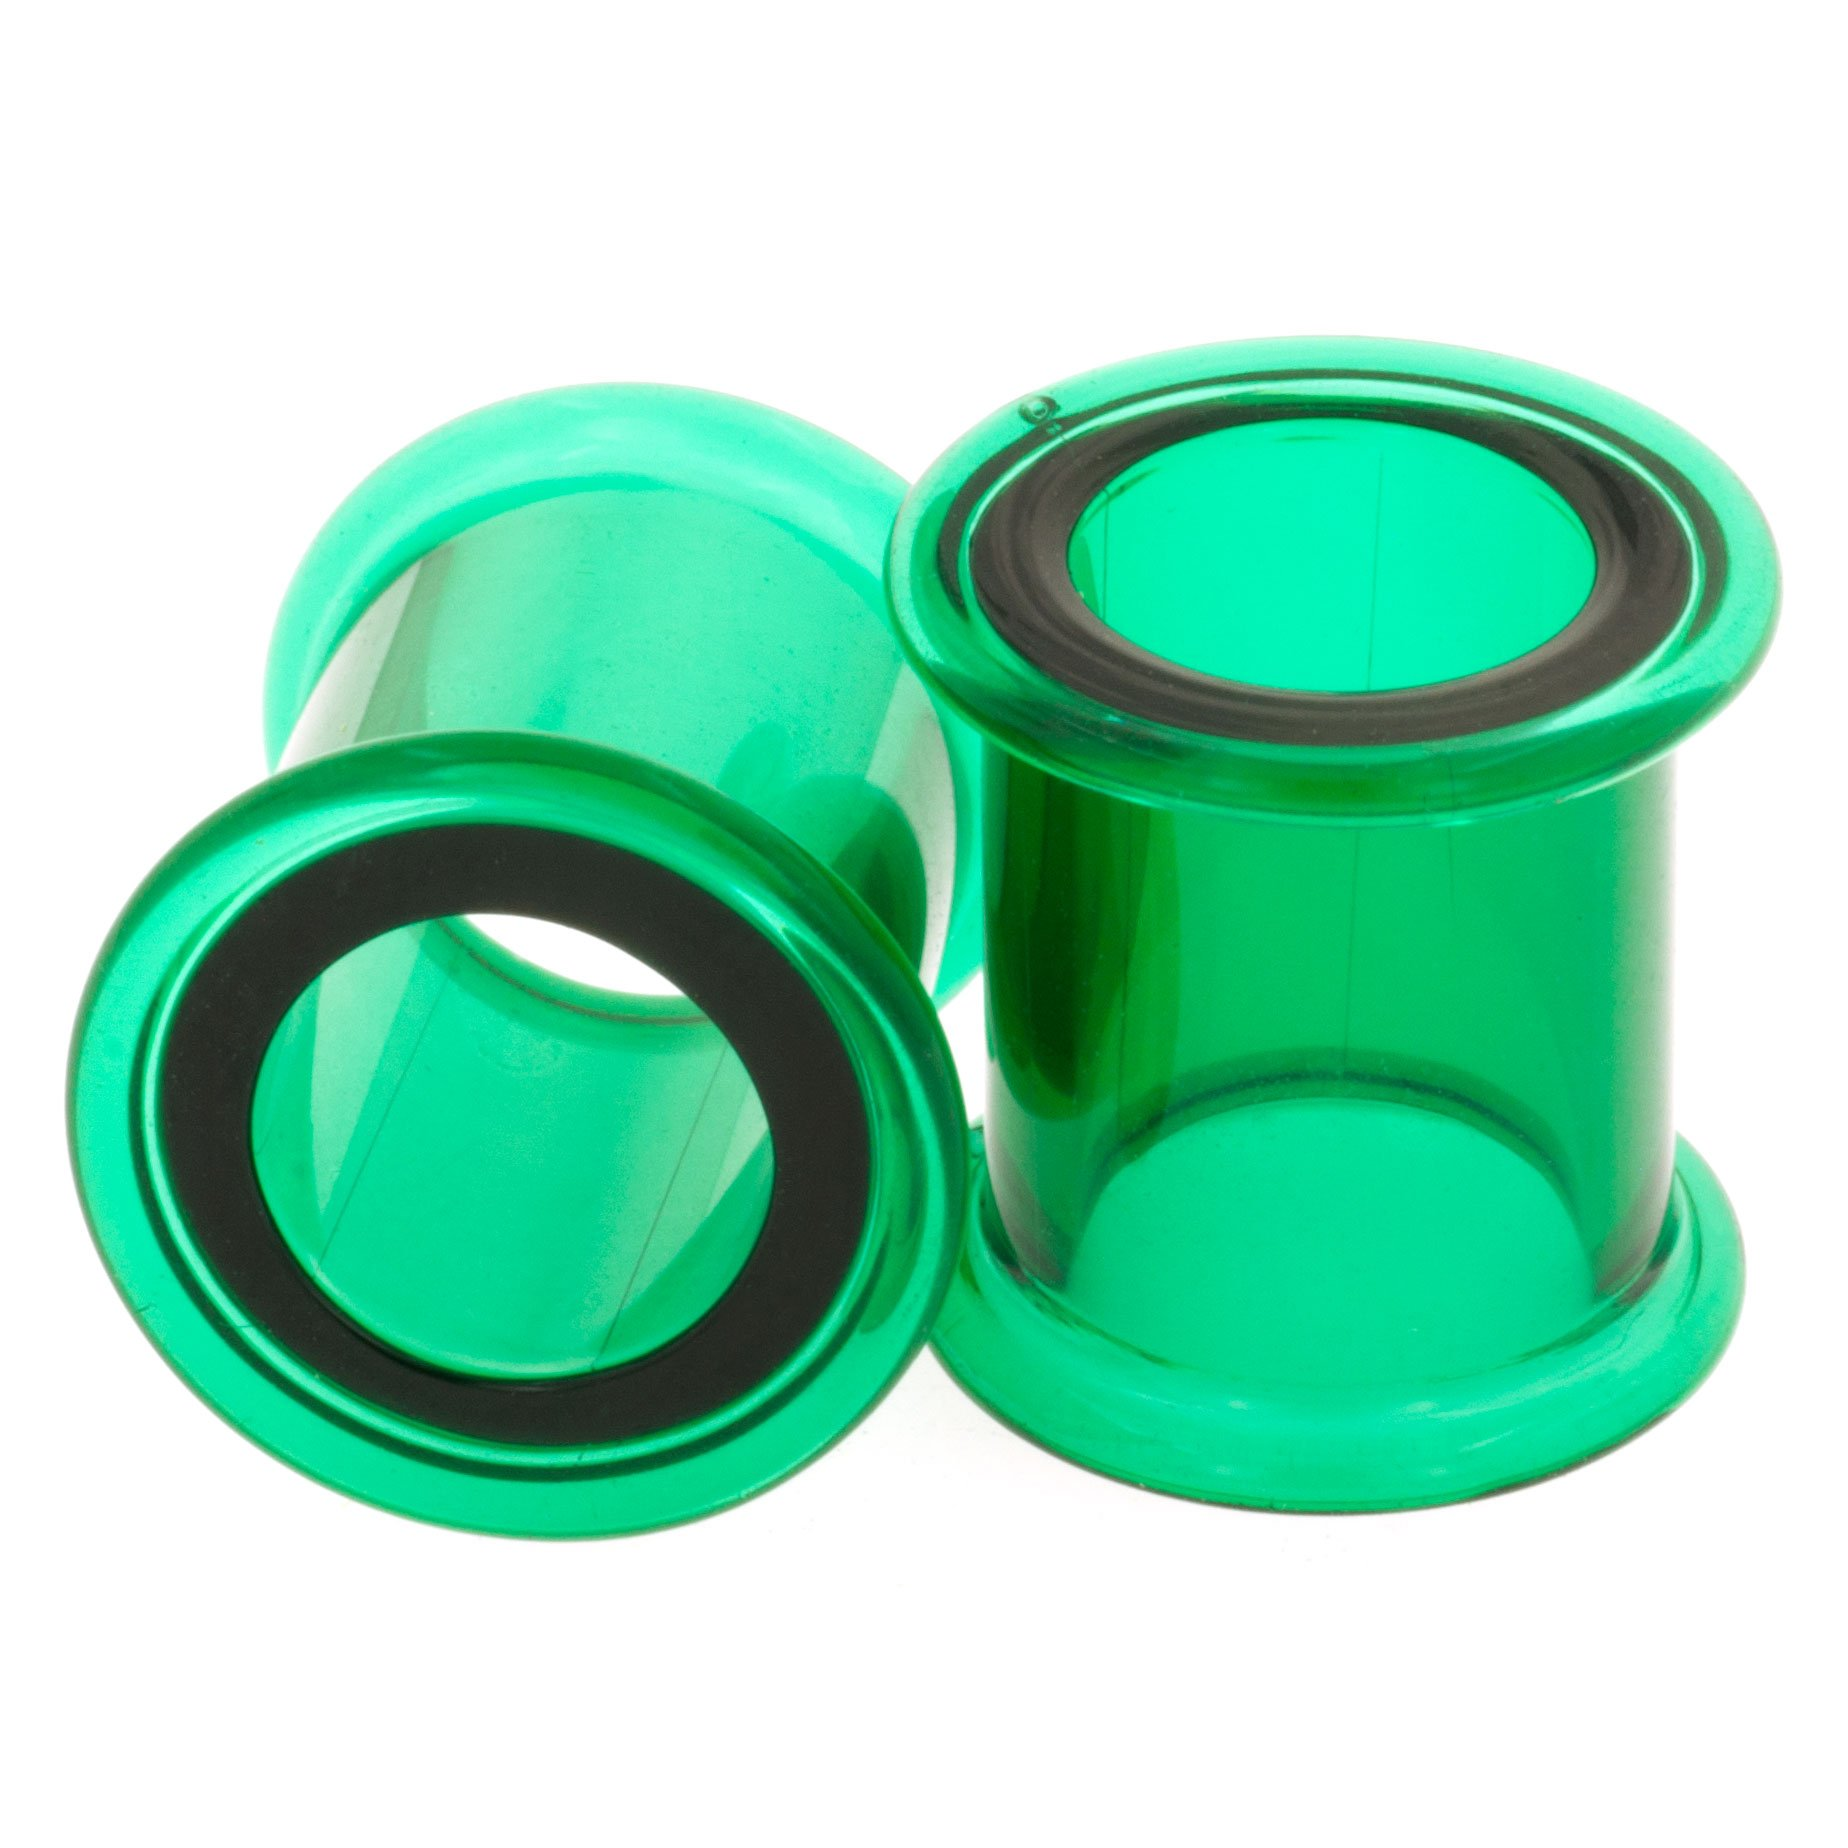 Pair of Glass Double Flared Eyelets: 0g, Emerald